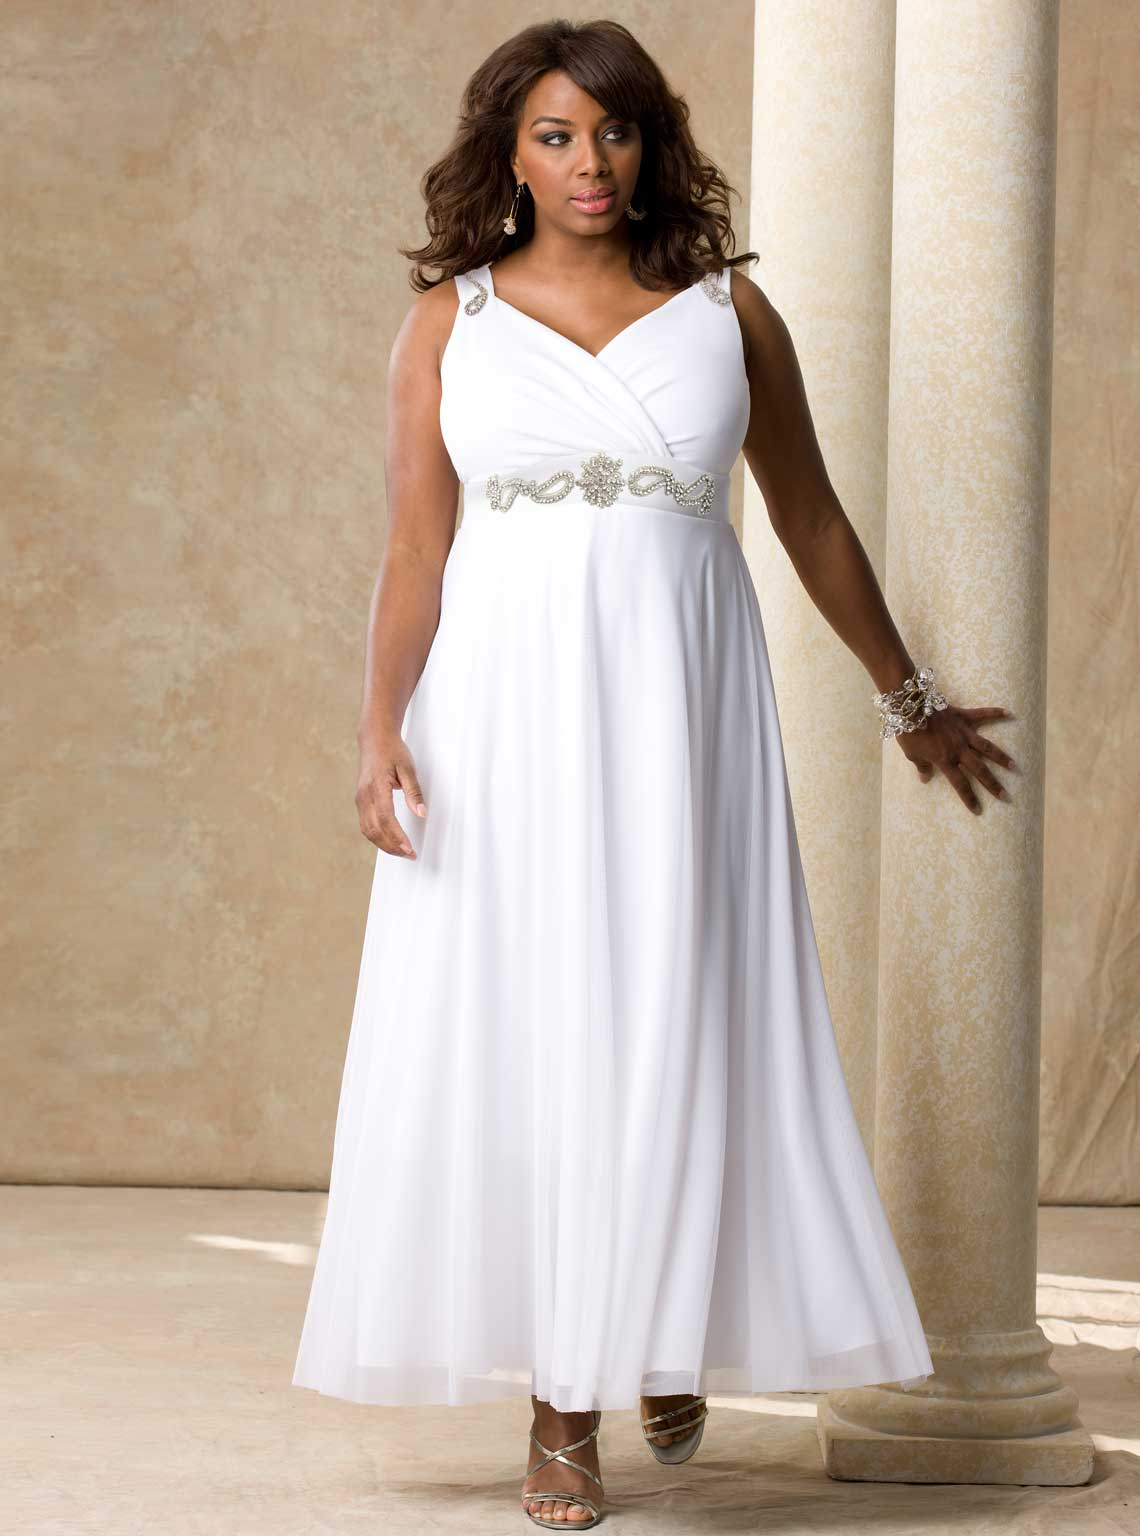 Plus size summer wedding dressescherry marry cherry marry for Summer dresses for weddings